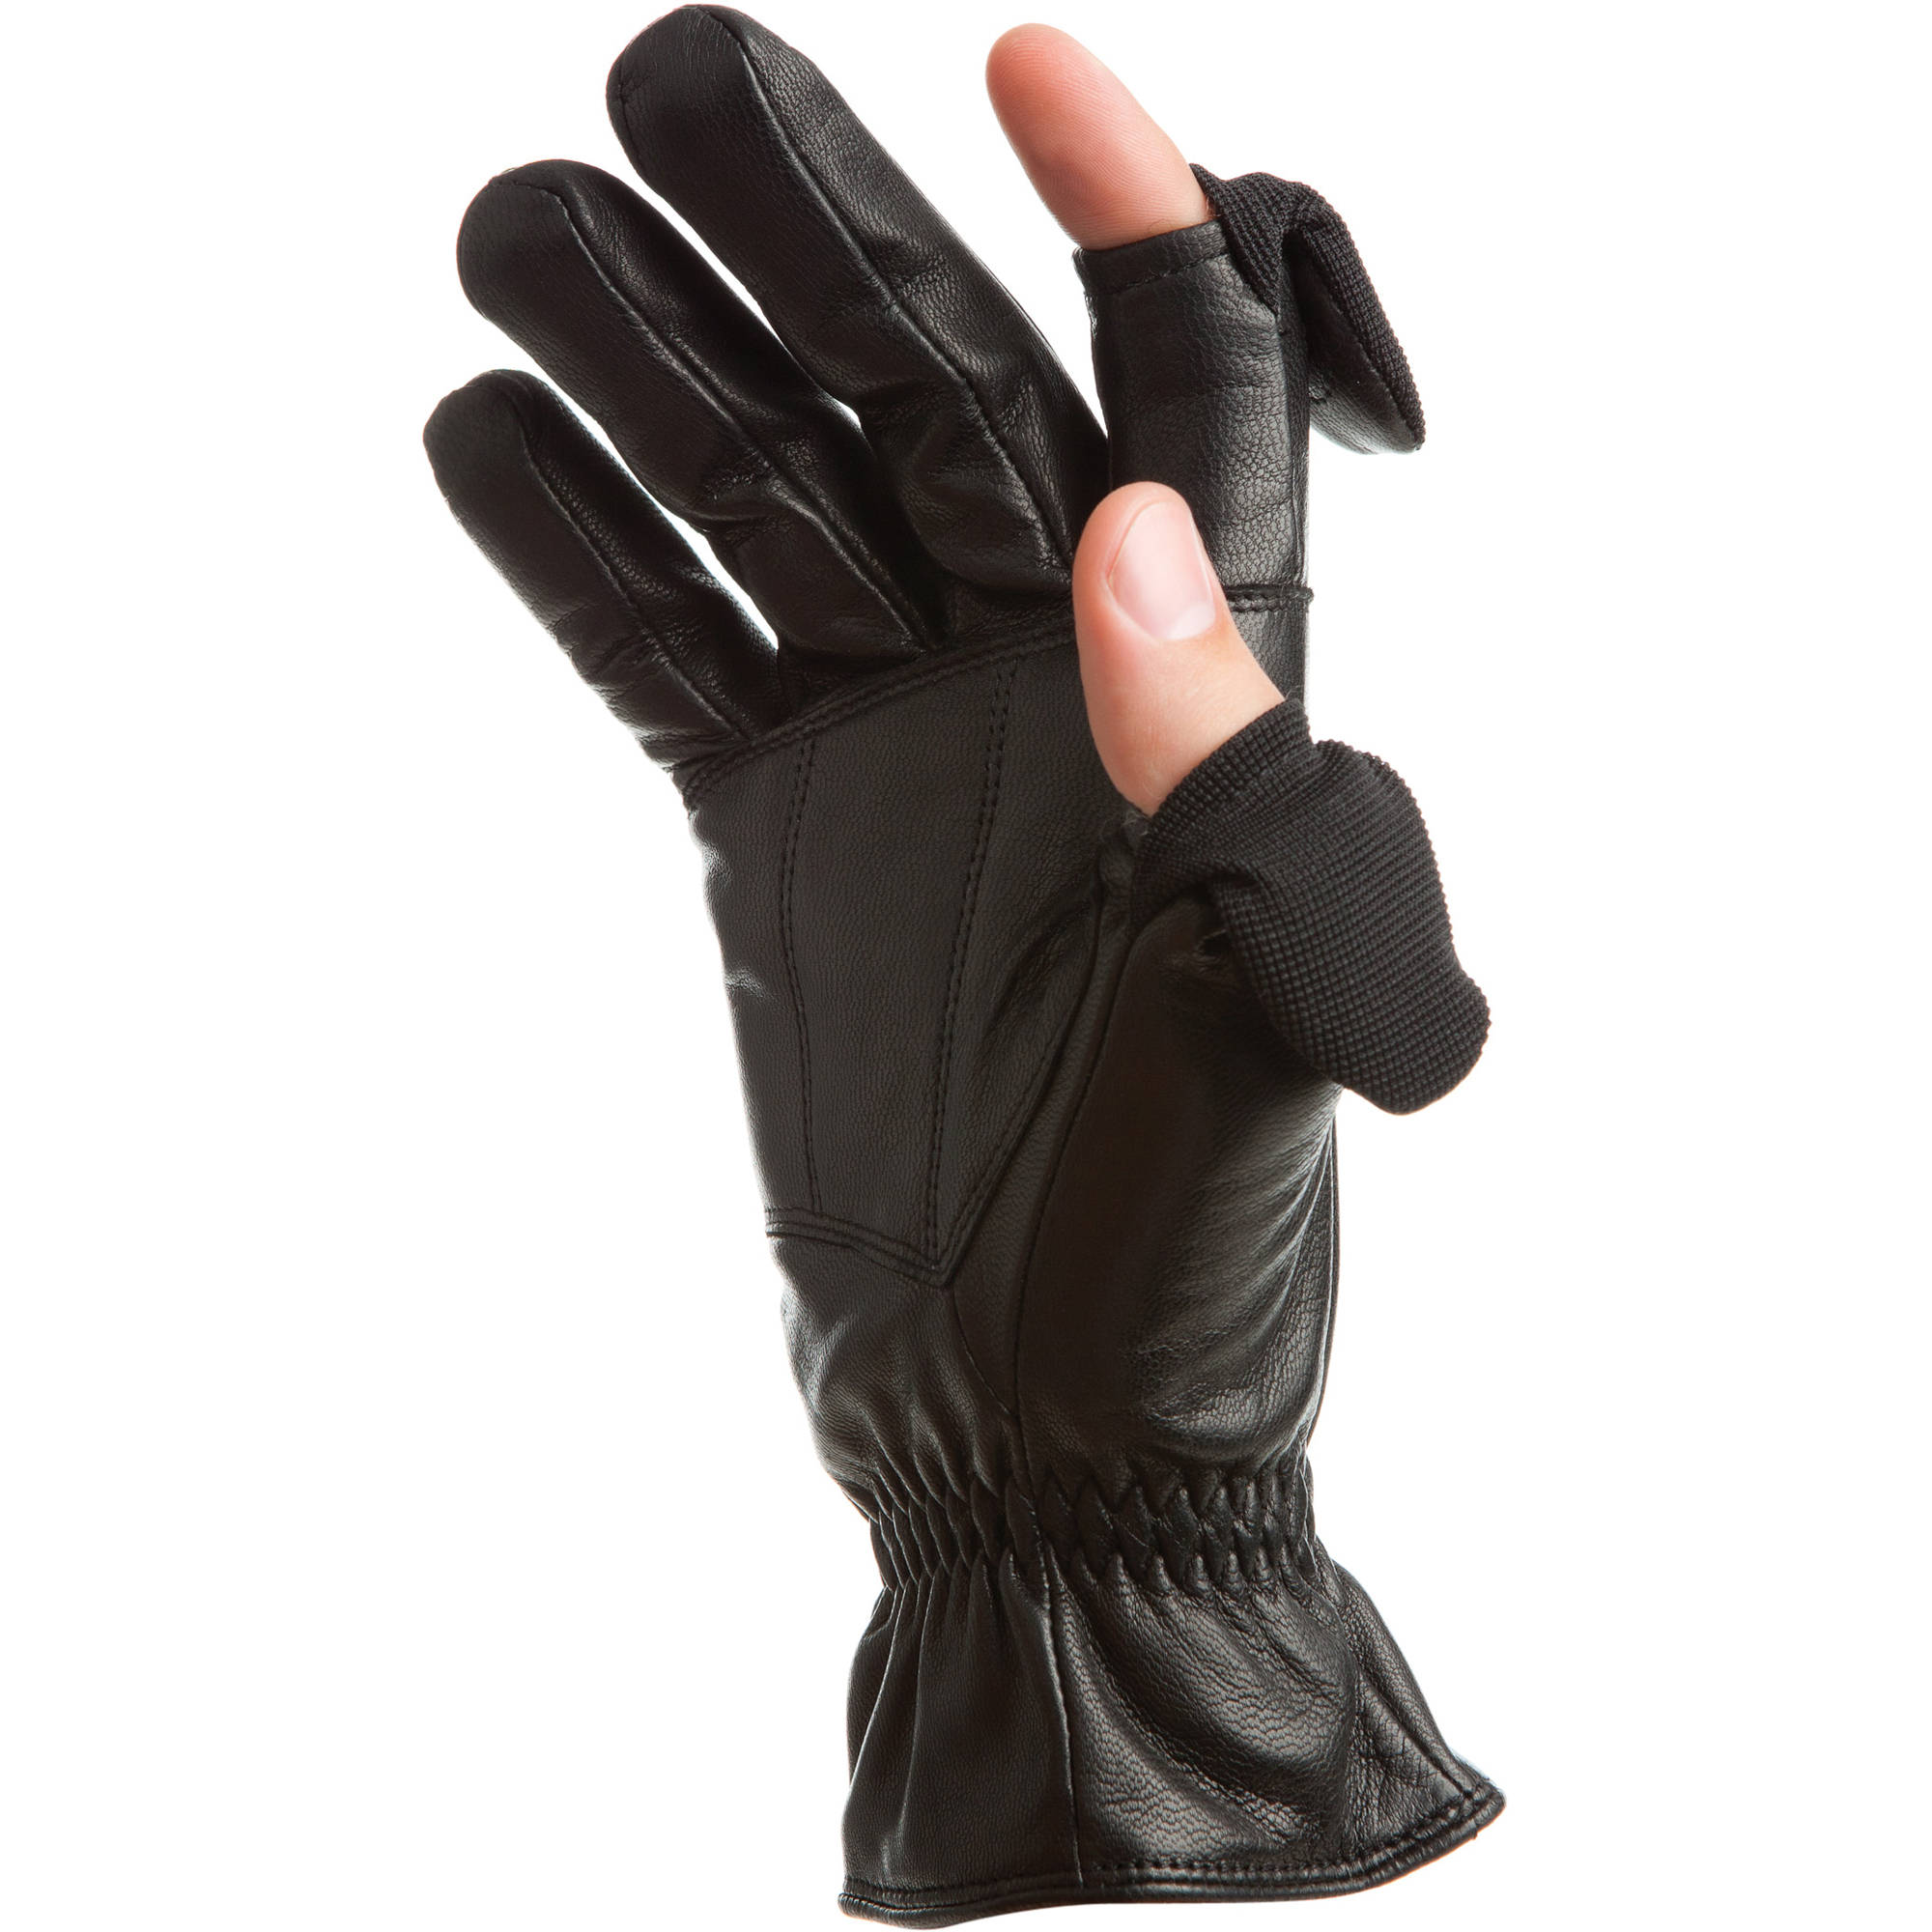 Mens gloves use iphone - Freehands Men S Leather Gloves Large Black